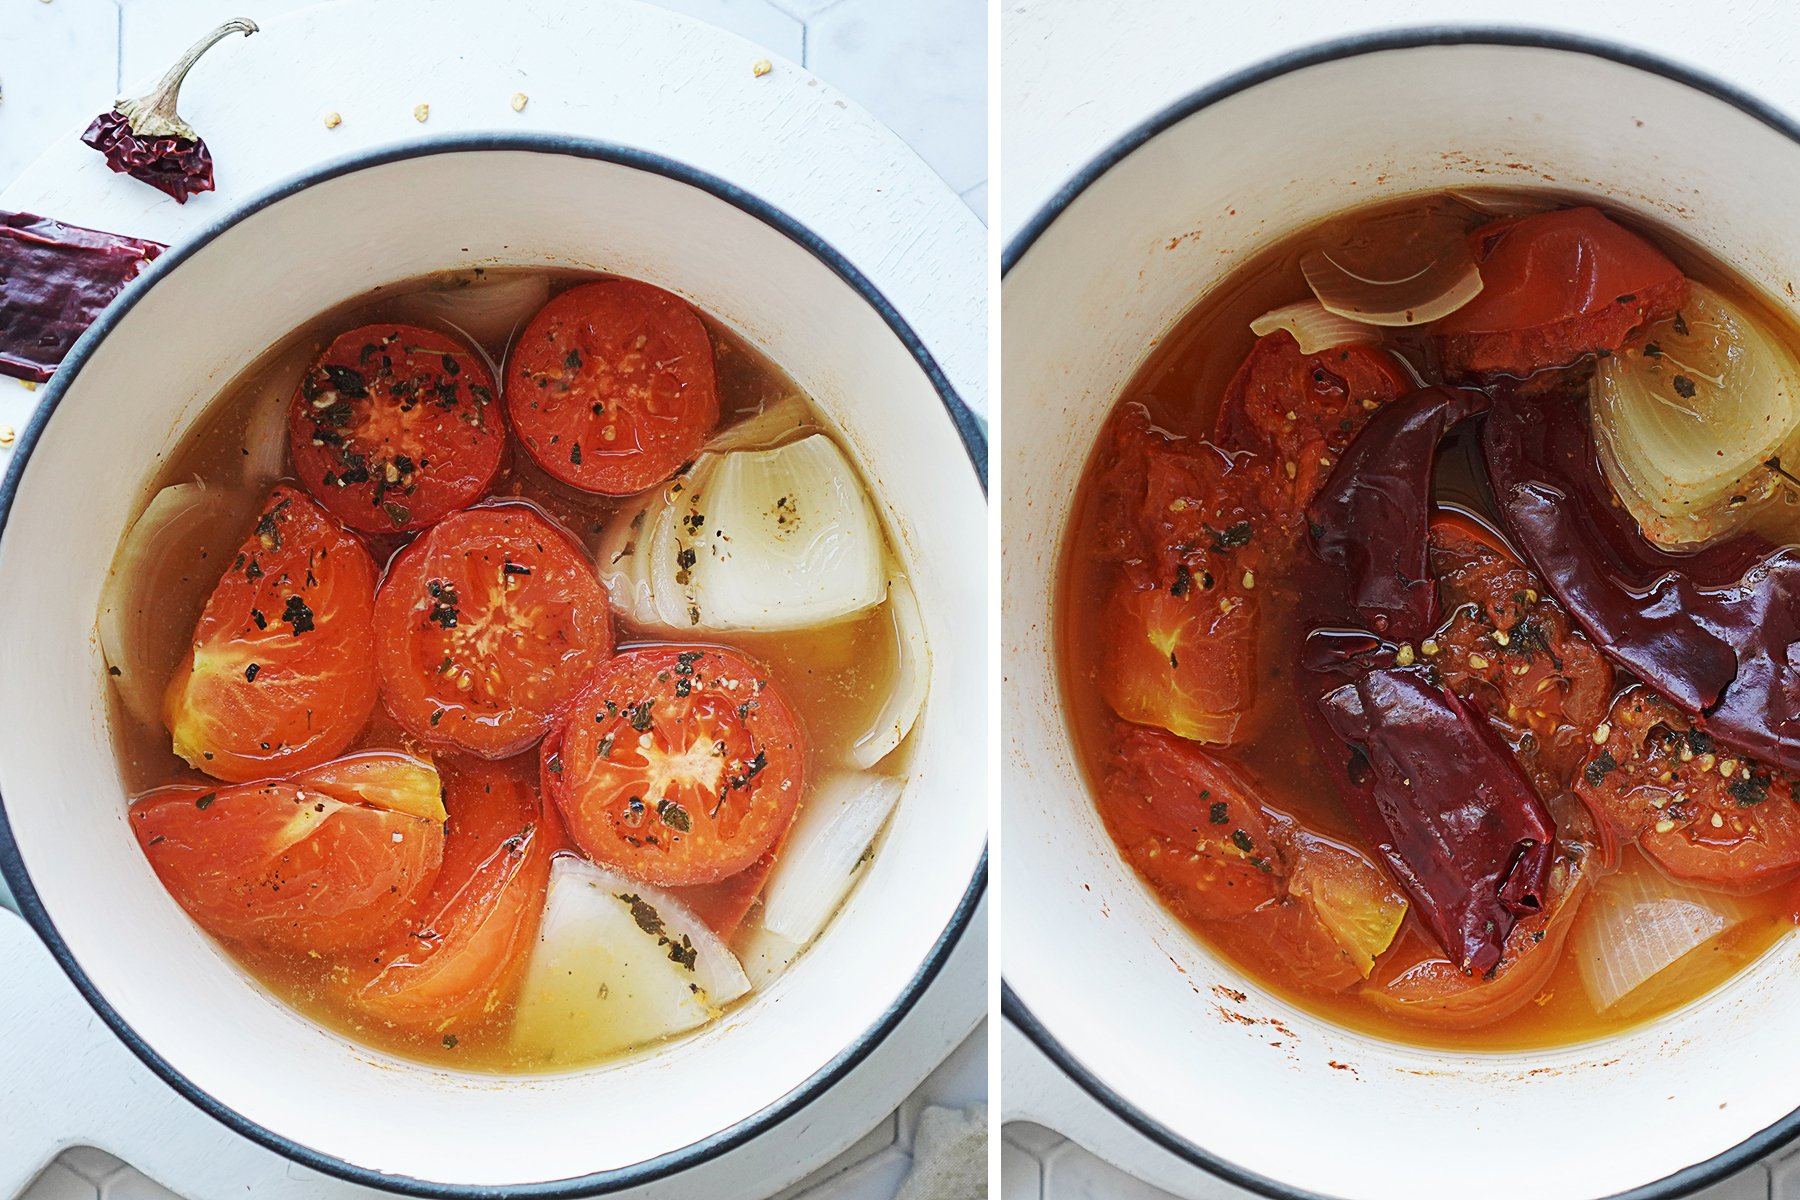 A small saucepan with cooked tomatoes, garlic, onions & guajillo chiles